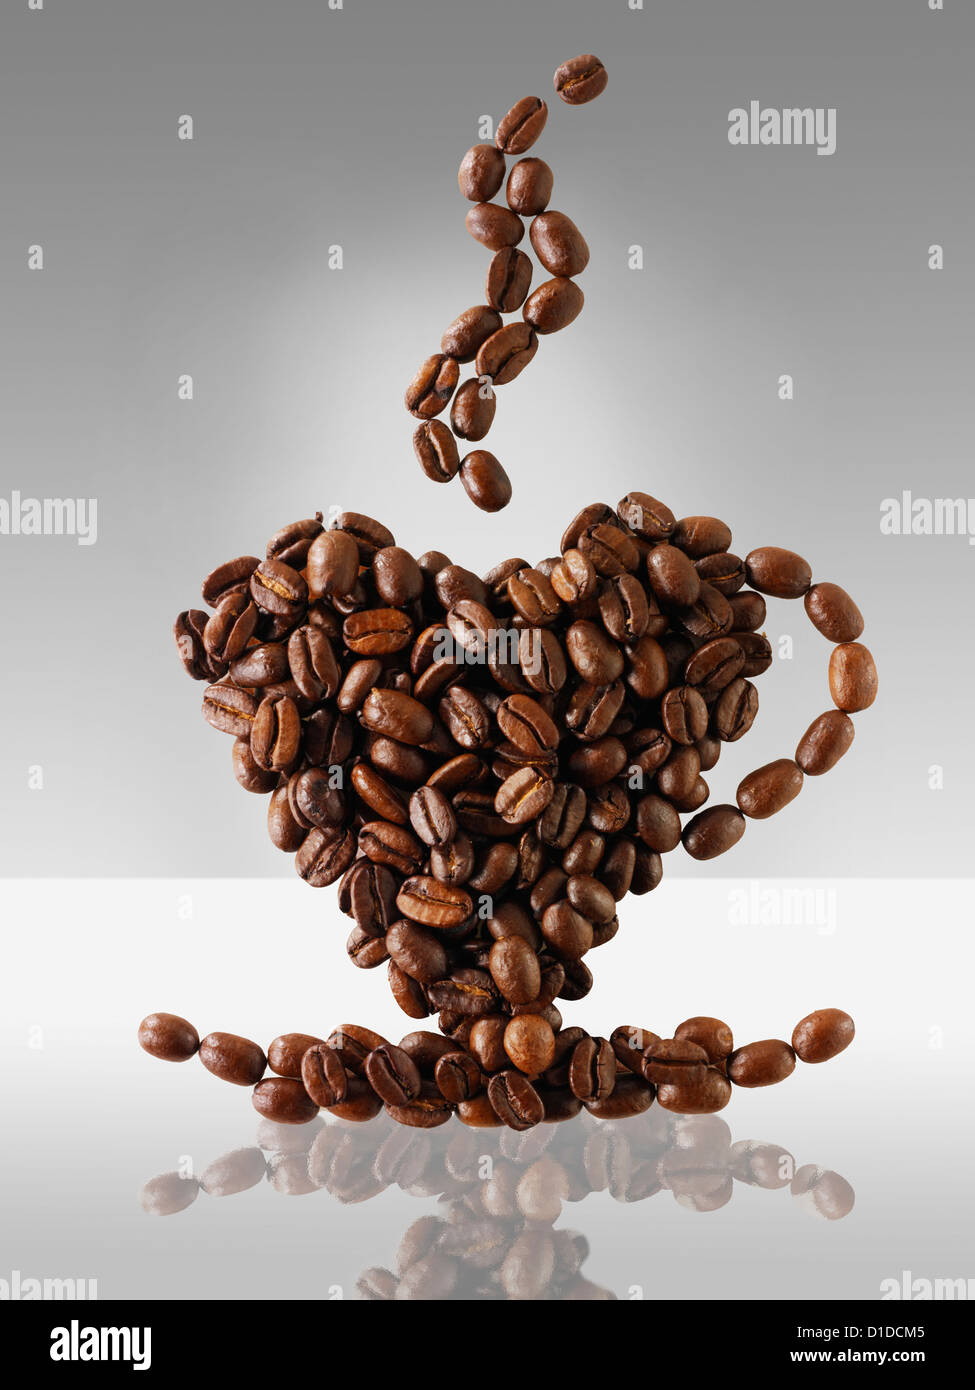 Coffee beans in the shape of a coffee cup. ' love coffee  ' - Stock Image